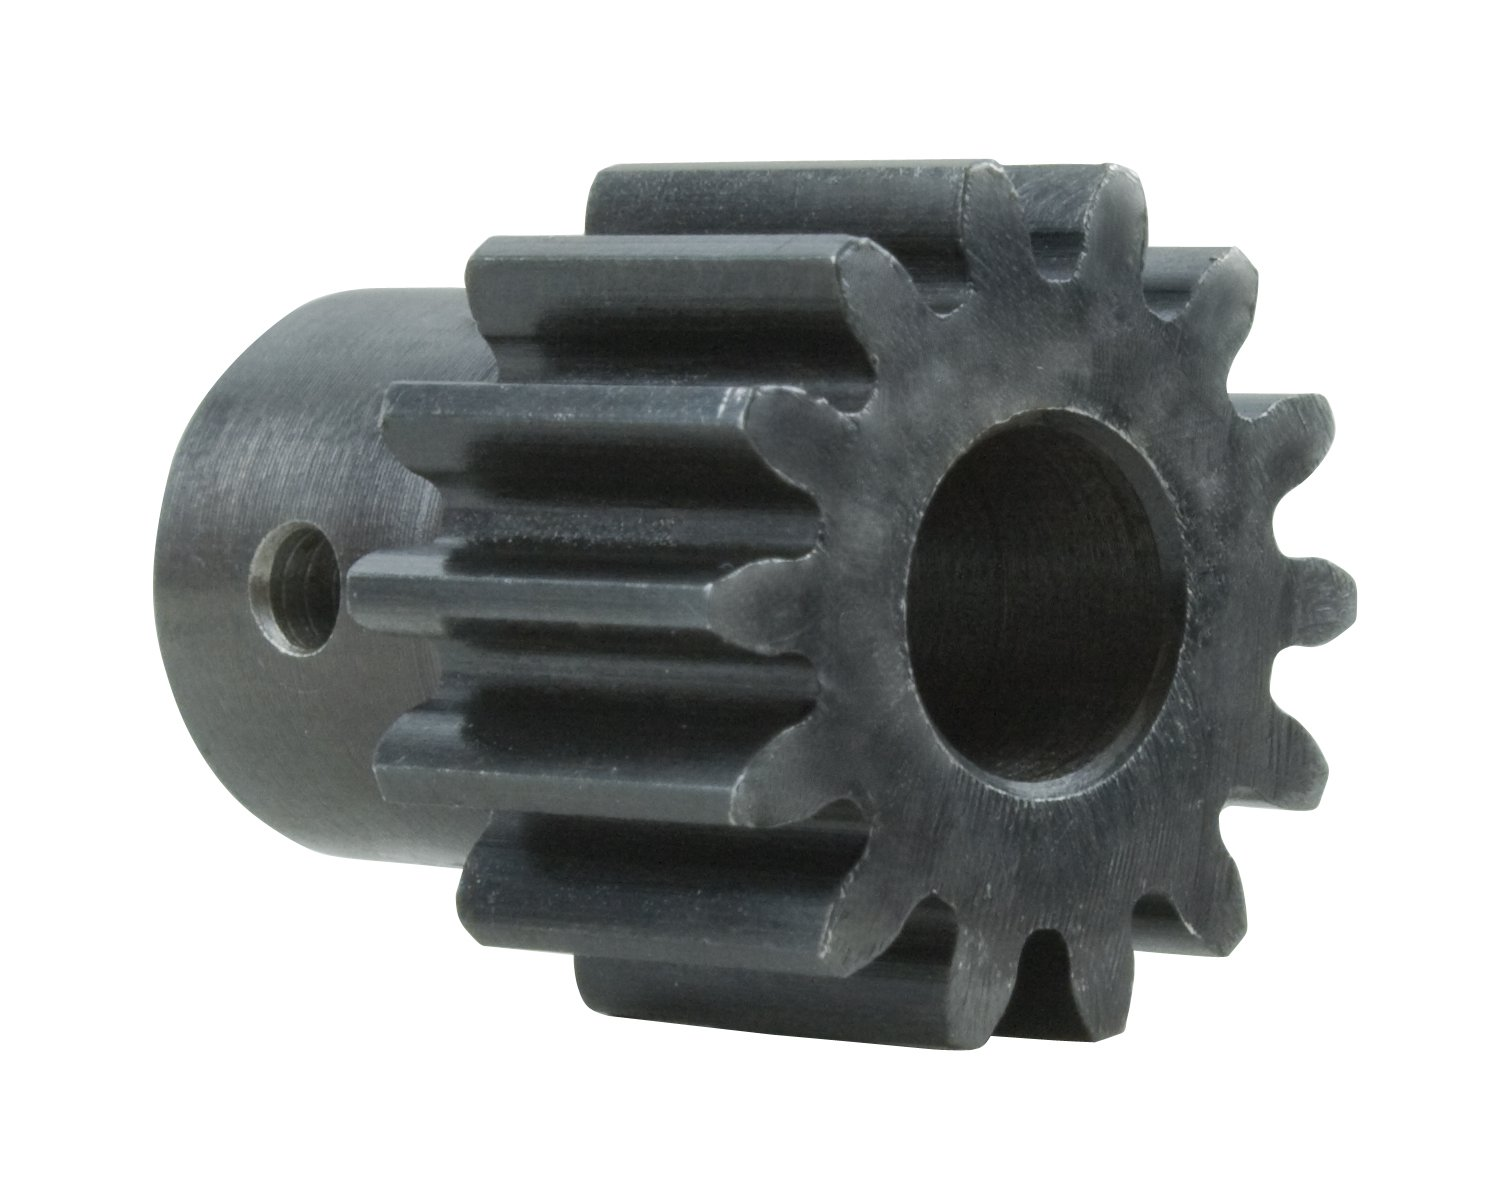 Martin S2028BS 3 8 Spur Gear 14.5° Pressure Angle High Carbon Steel Inch 20 Pitch 3 8 Bore 1.5 OD 0.375 Face Width 28 Teeth